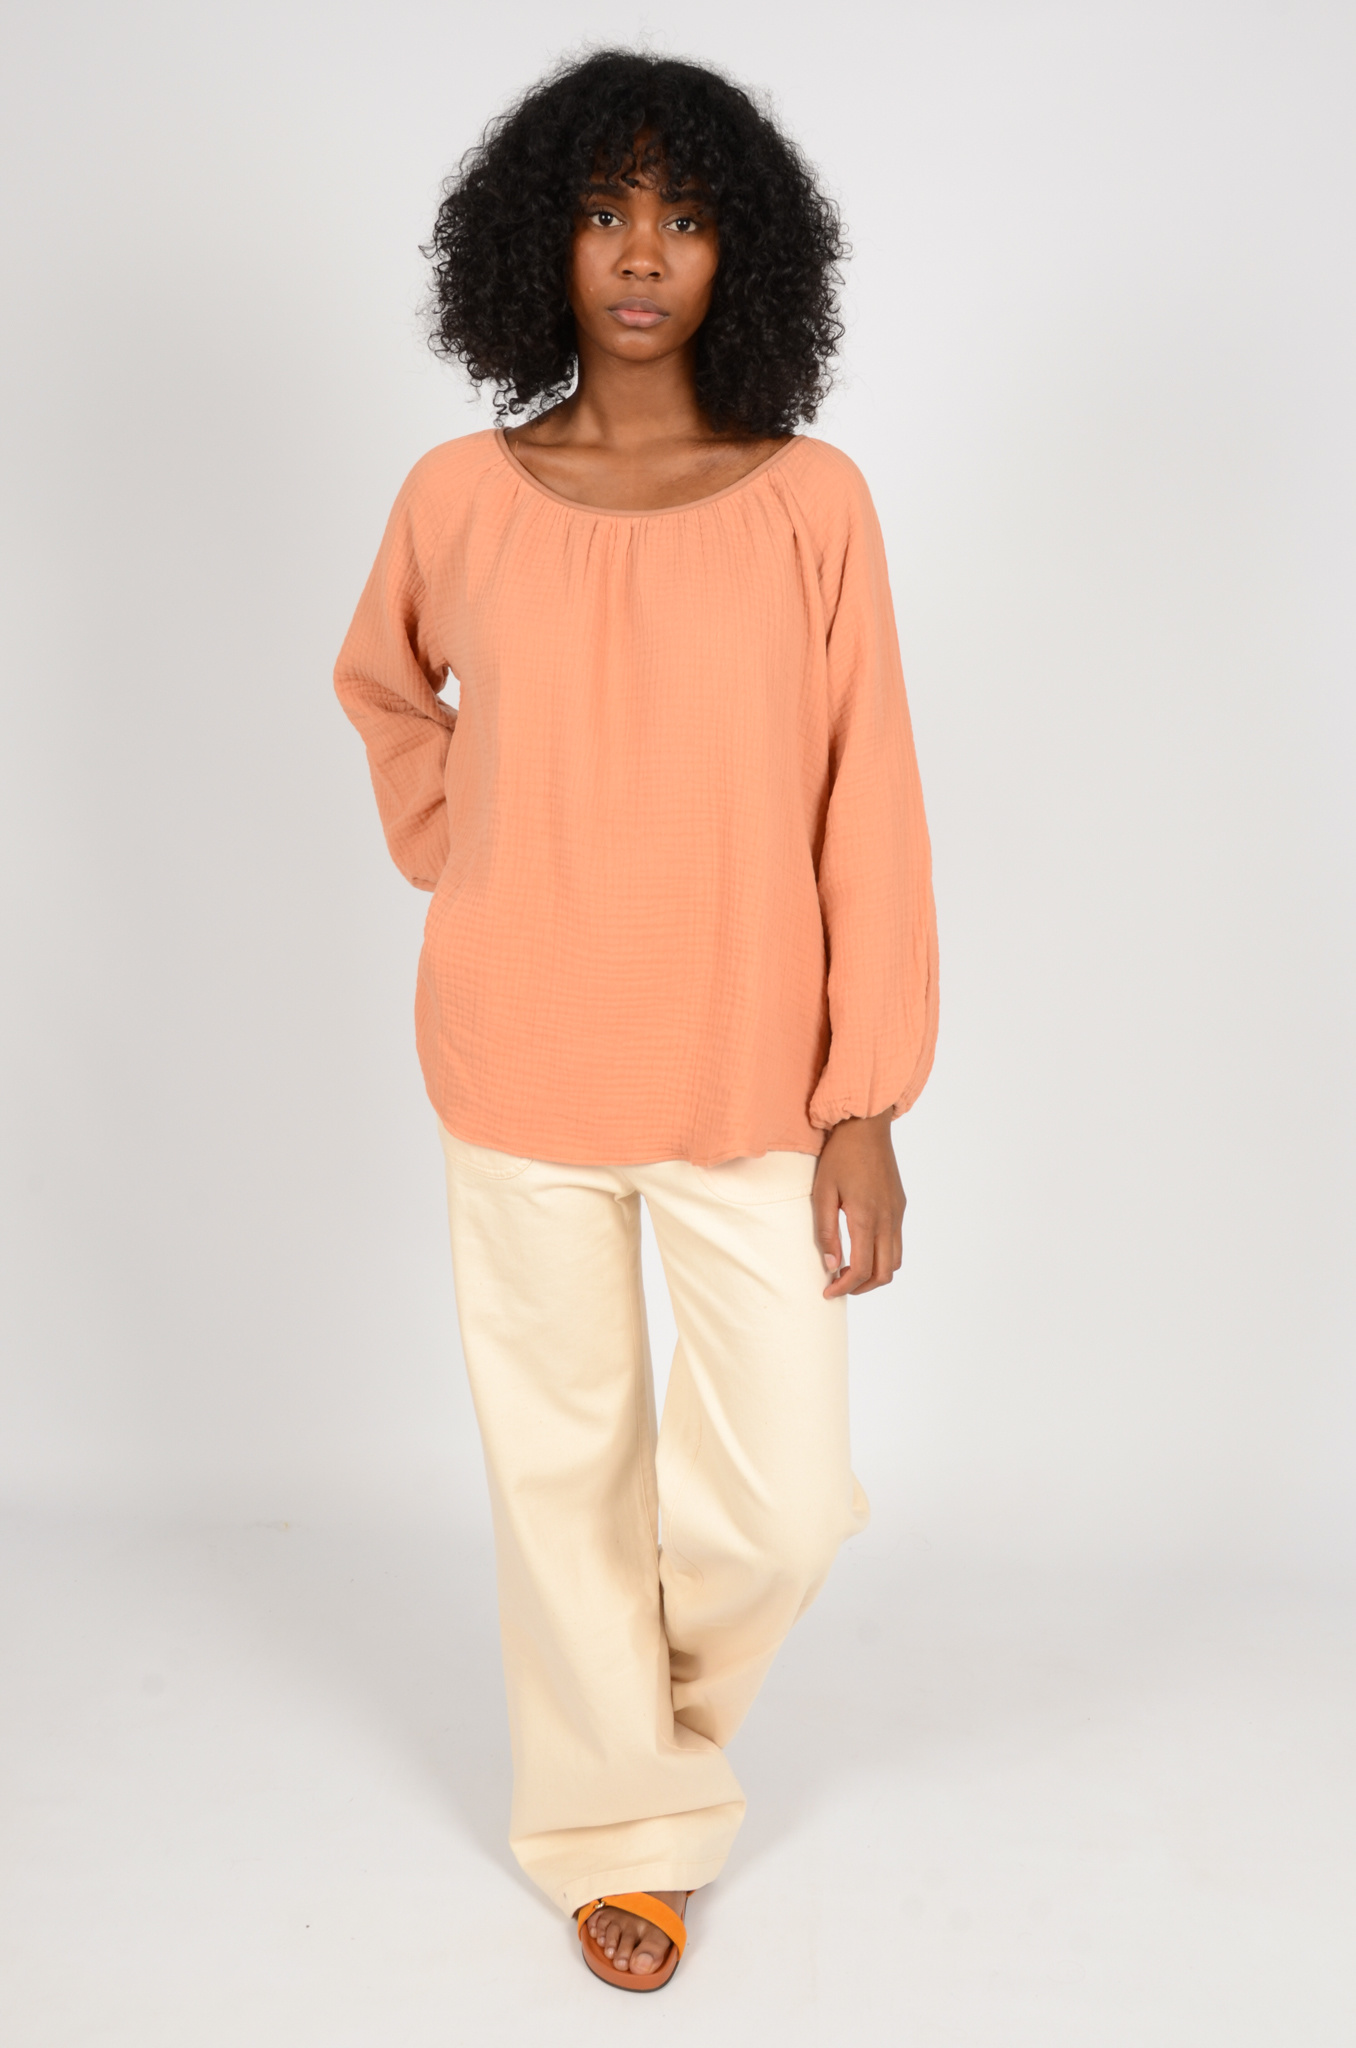 MORNING BLOUSE IN PEACH-7